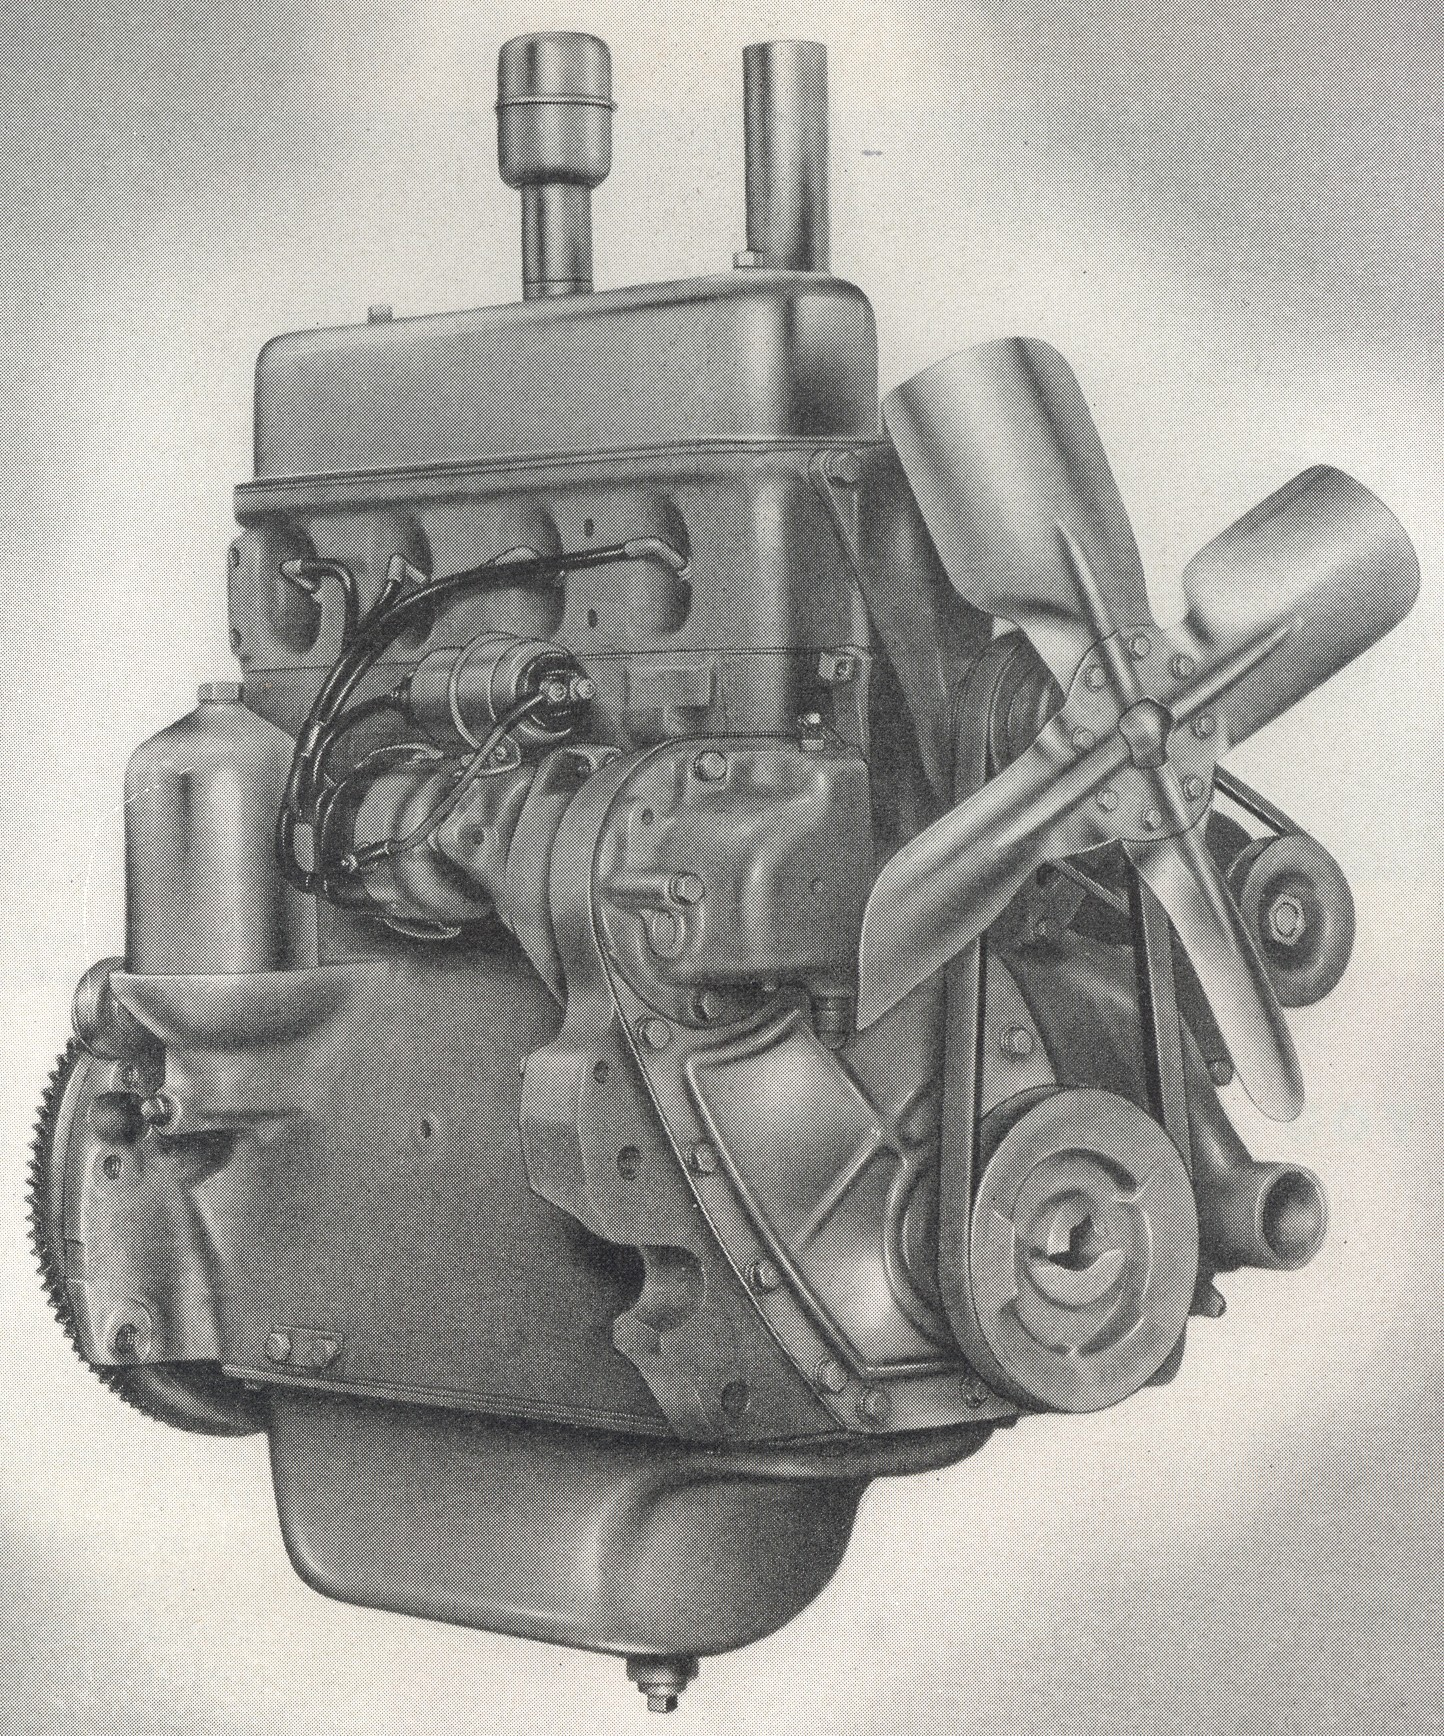 List of International Harvester engines | Tractor & Construction